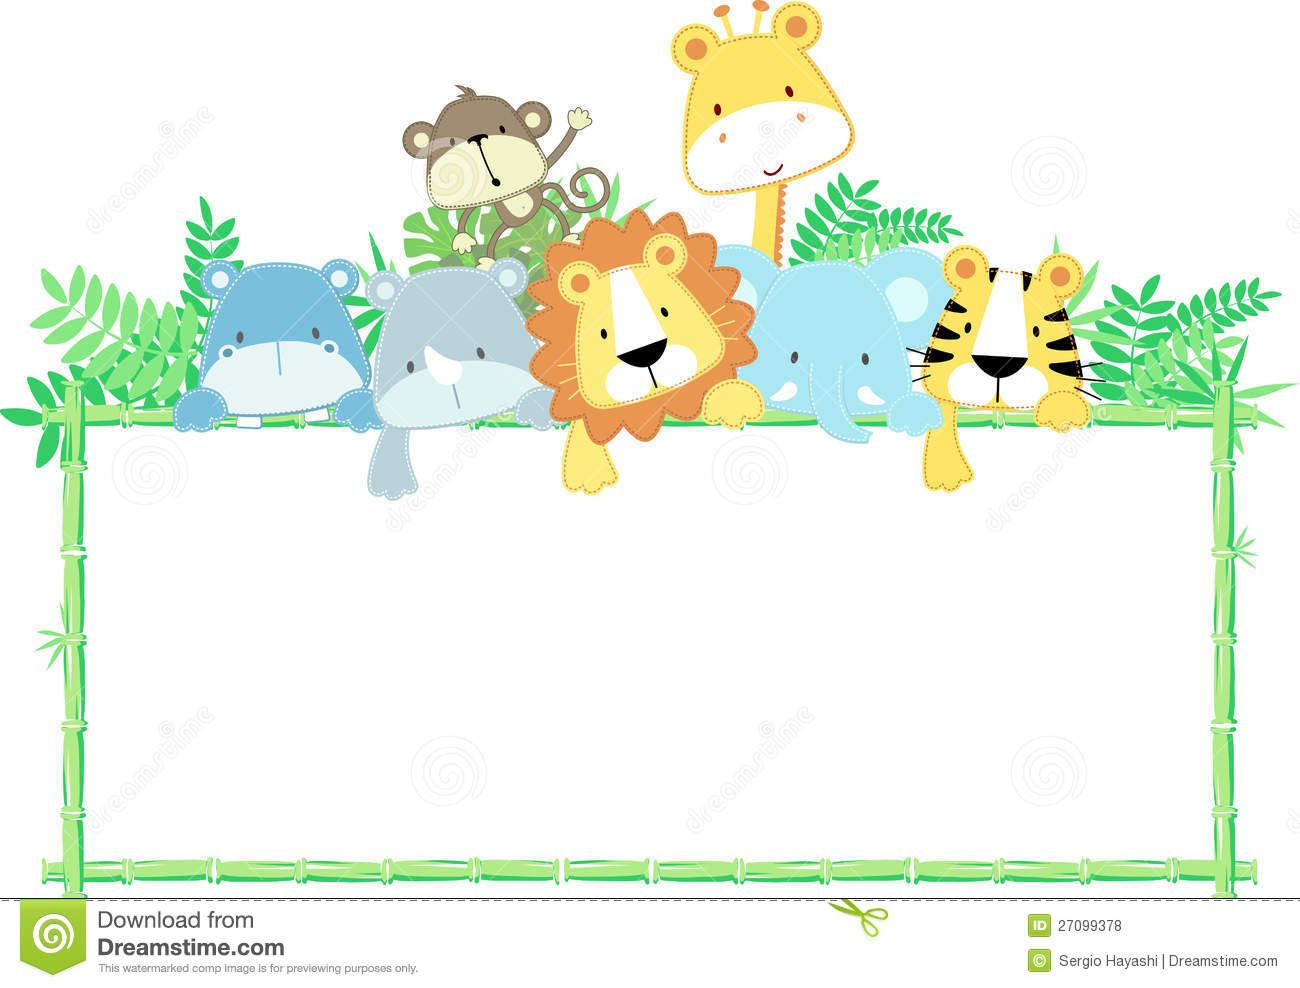 Baby Animals Frame Download From Over 60 Million High Quality Stock Photos Images Vectors Si Cute Animal Clipart Cute Animal Illustration Clip Art Borders